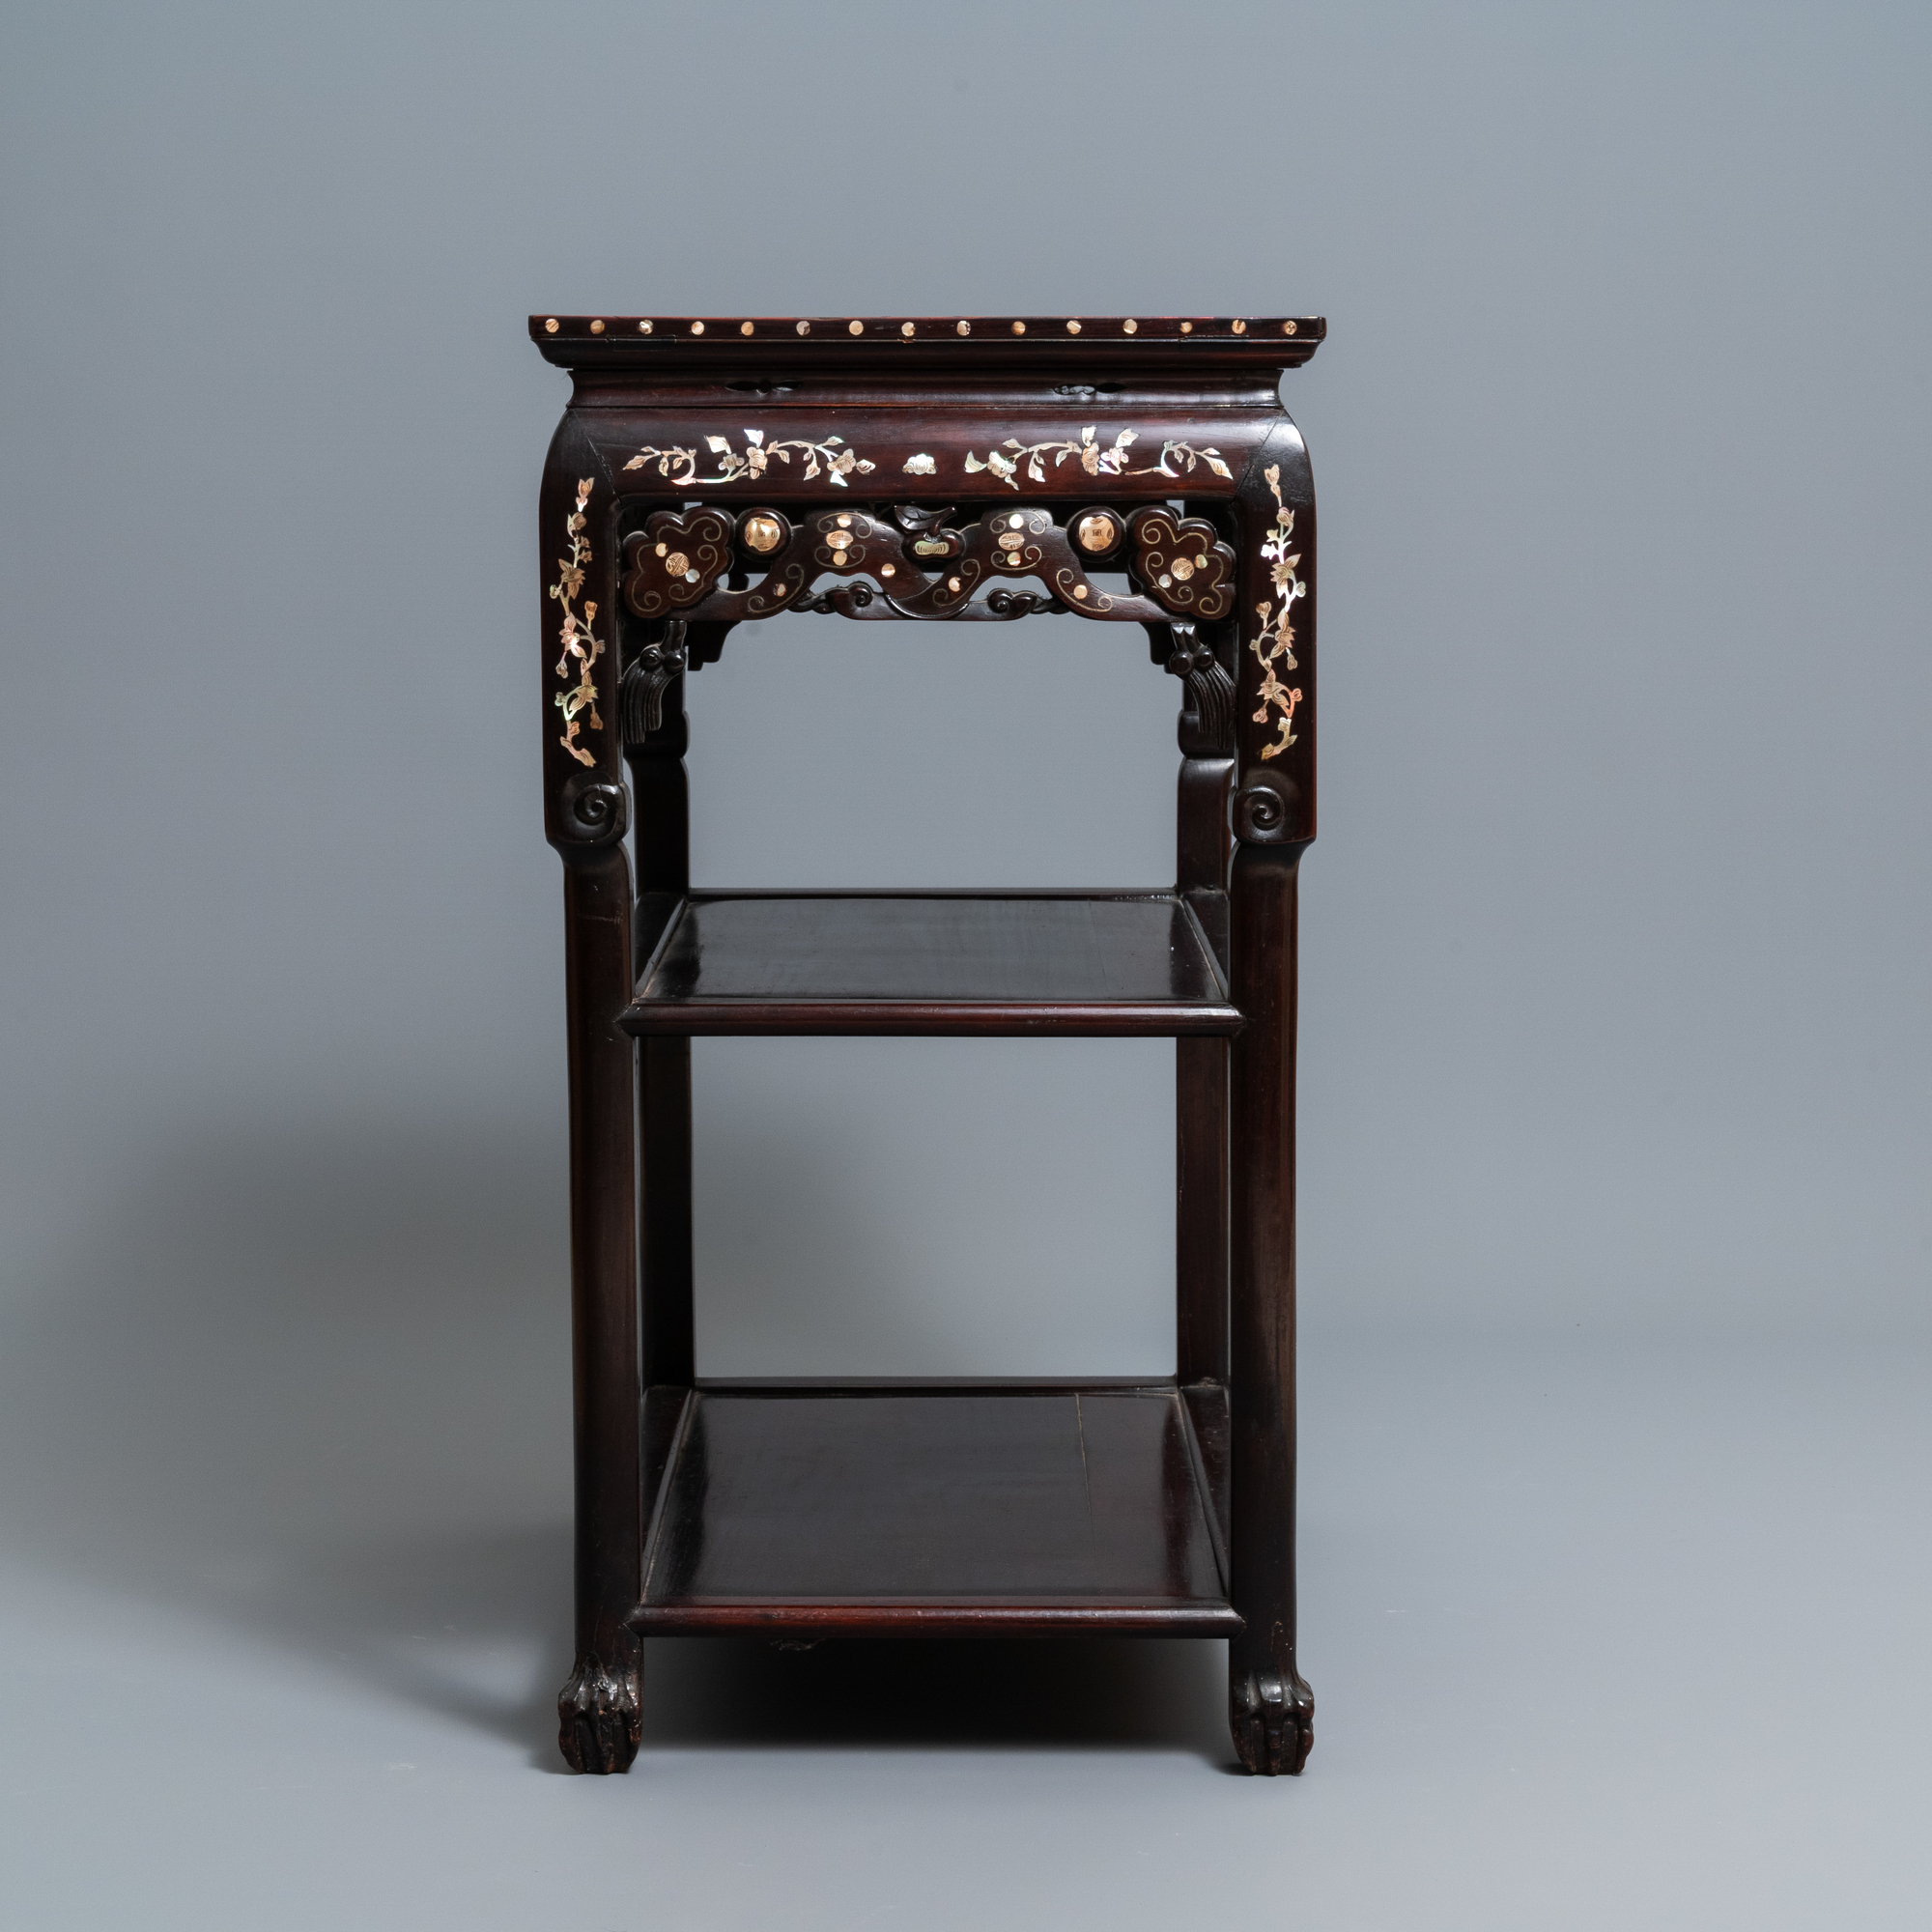 A Chinese mother-of-pearl-inlaid wooden sideboard with marble top, 19th C. - Image 3 of 10